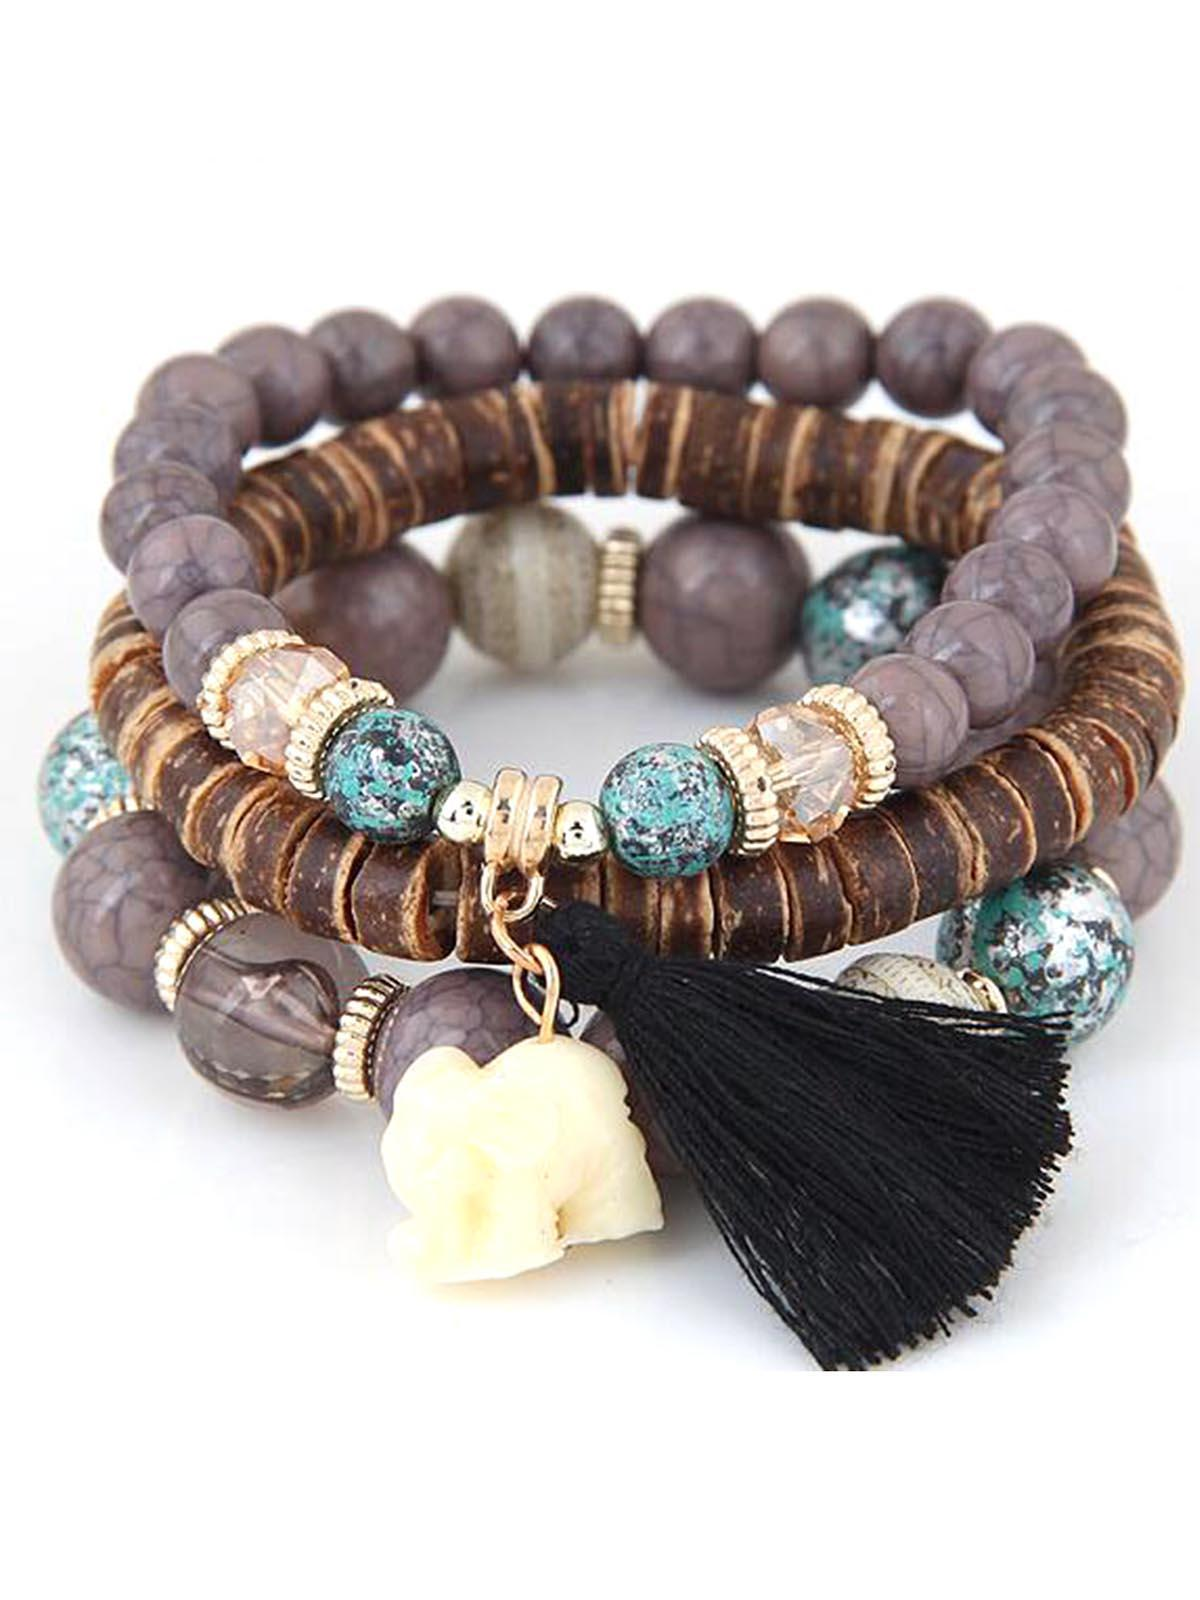 ad74f052e3338 Women Fashion Wood Beads Bracelets Boho Small Elephant Charm Bracelets Set  Vintage Style Jewelry FSBR